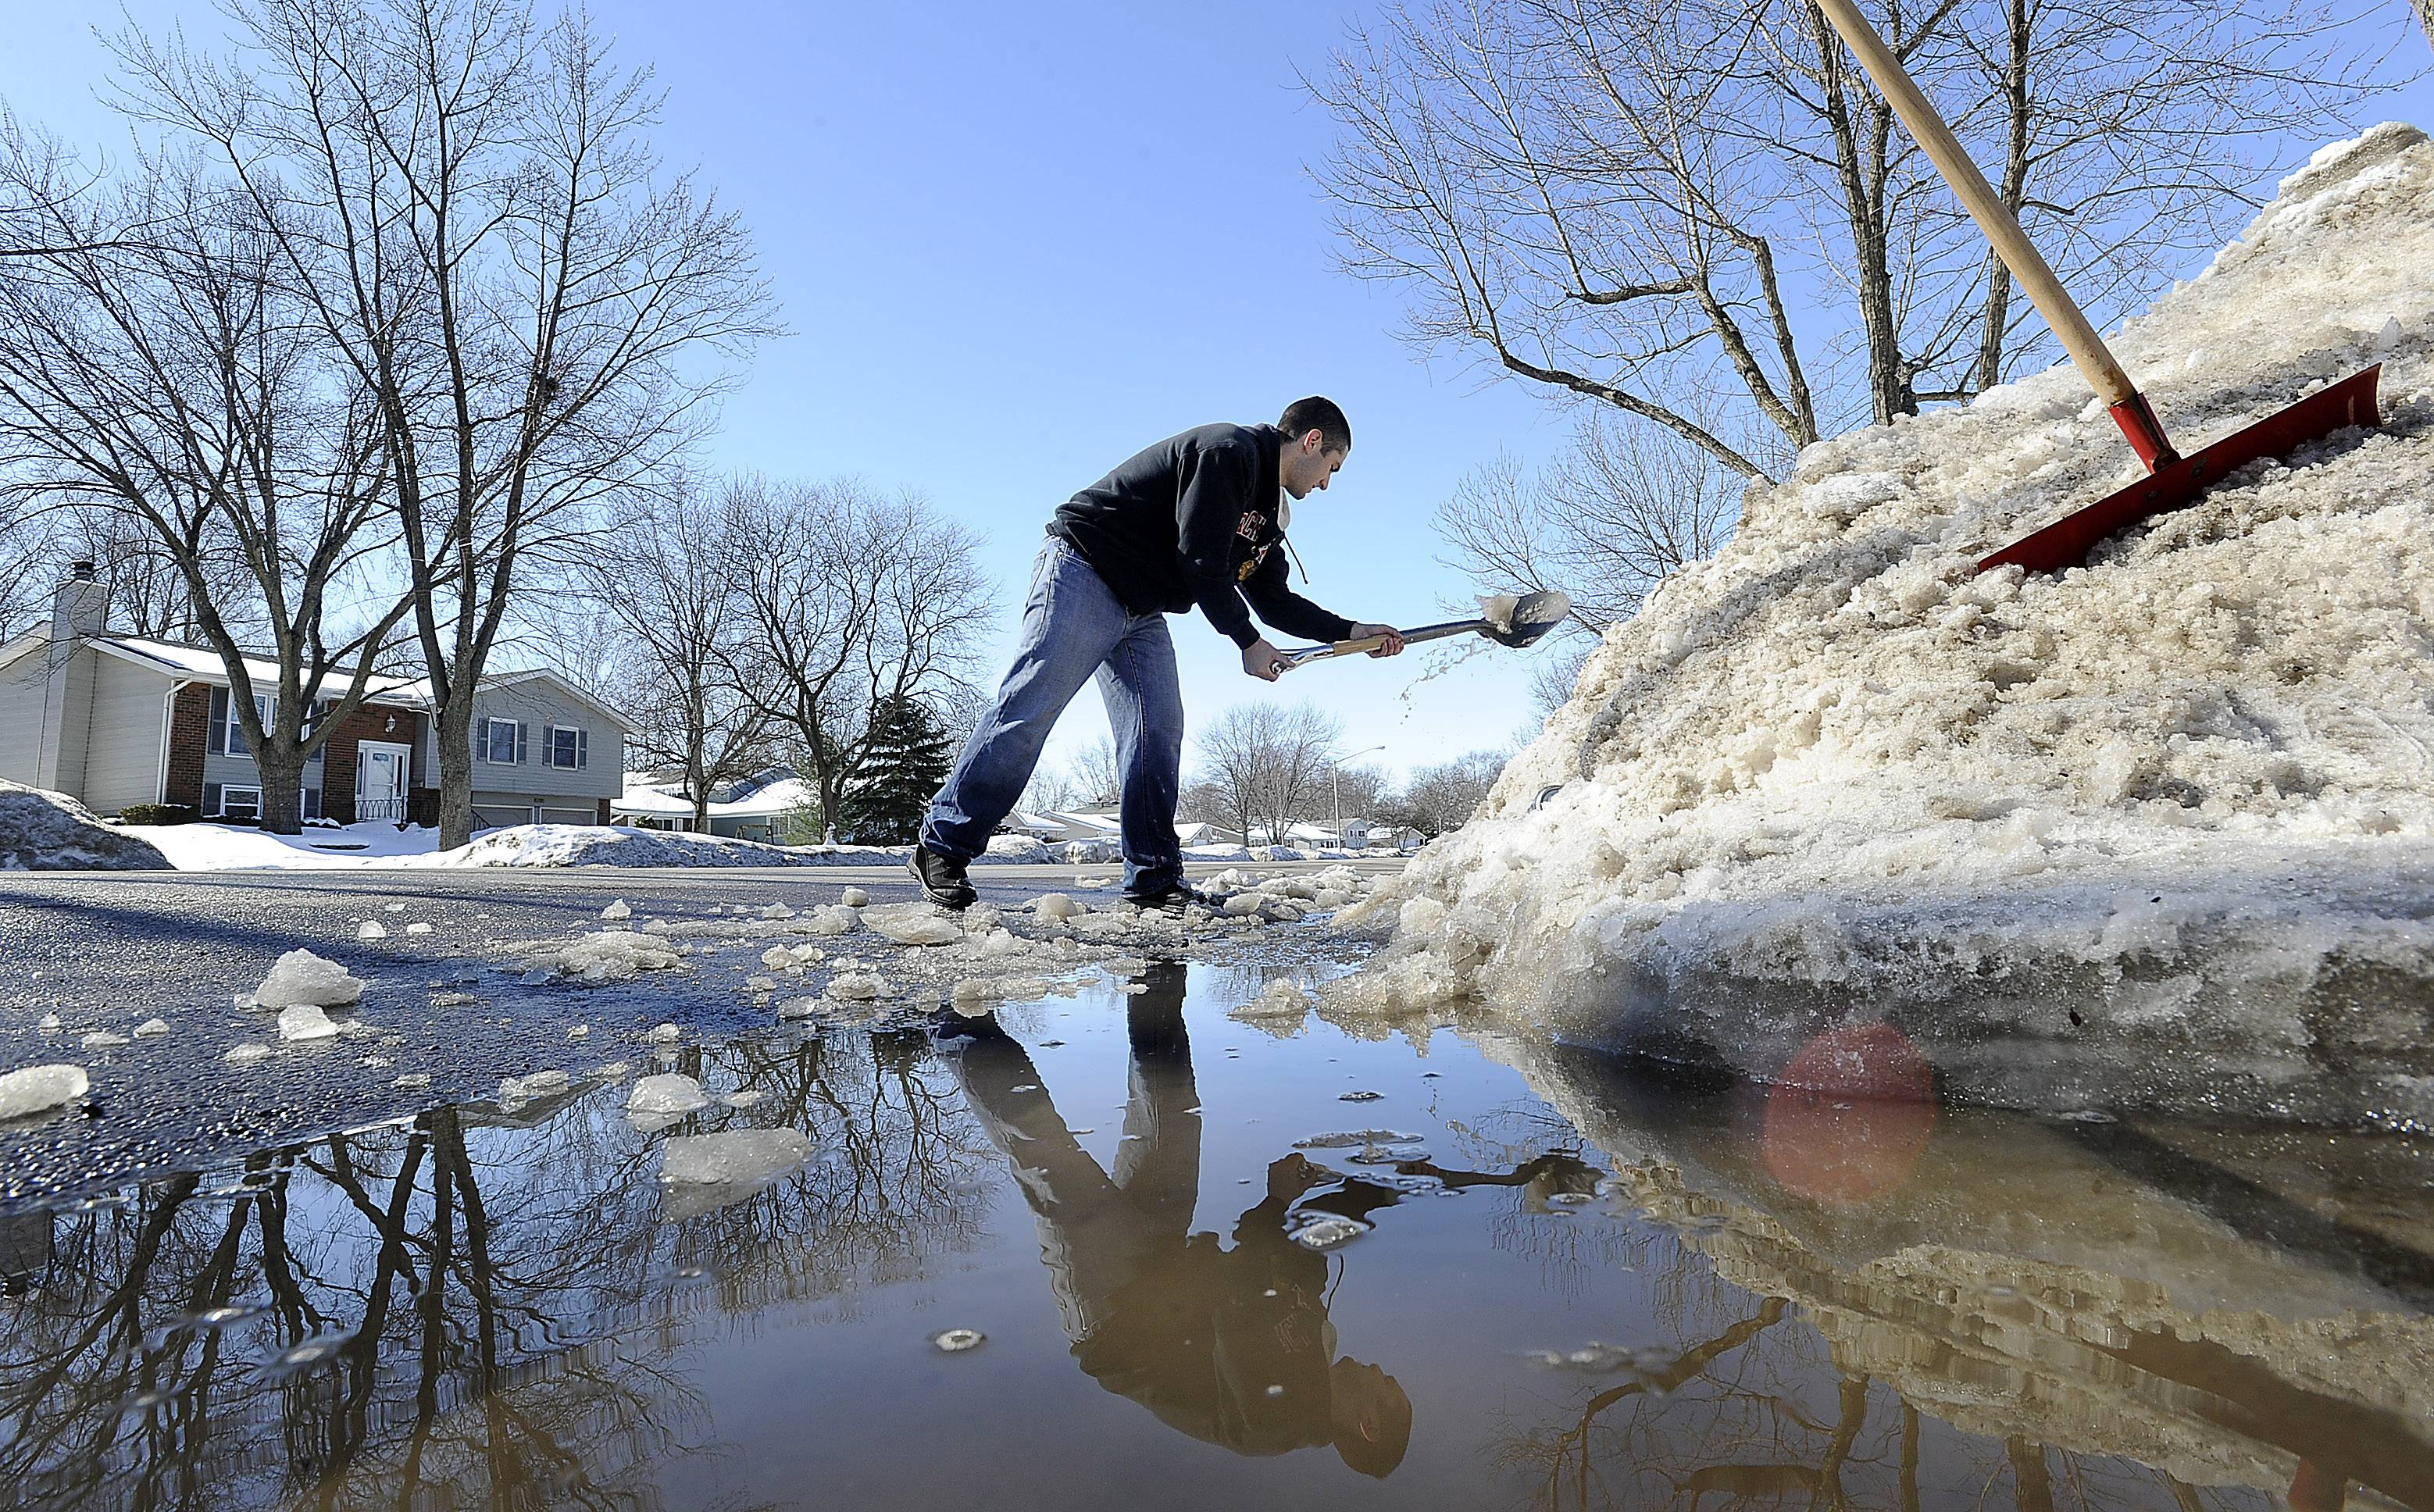 "Mike Hamlin, 26, of Schaumburg, clears out the ice and snow from his driveway as his house sits on a low end of the road as the winter thaw starts. ""It was a couple of inches deep, enough to cover my foot,"" he said as his first order of business was to clear the grate in the street. For over two hours until it was time for him to leave for work he chopped away at ice chunks at the end of his driveway and street."